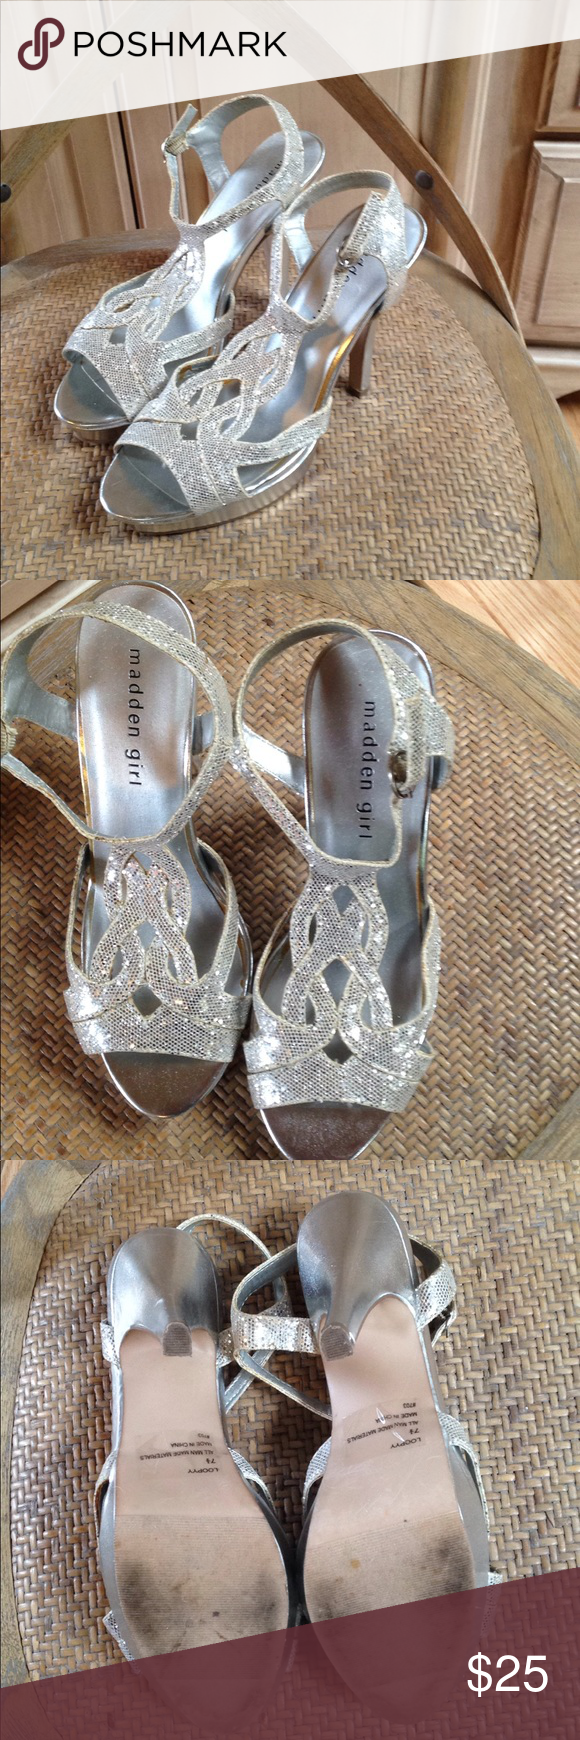 ff68b3b4e1e Madden Girl silver heels Loopy 7.5 Madden Girl size 7.5 medium heels. These  are glittery silver heels labeled